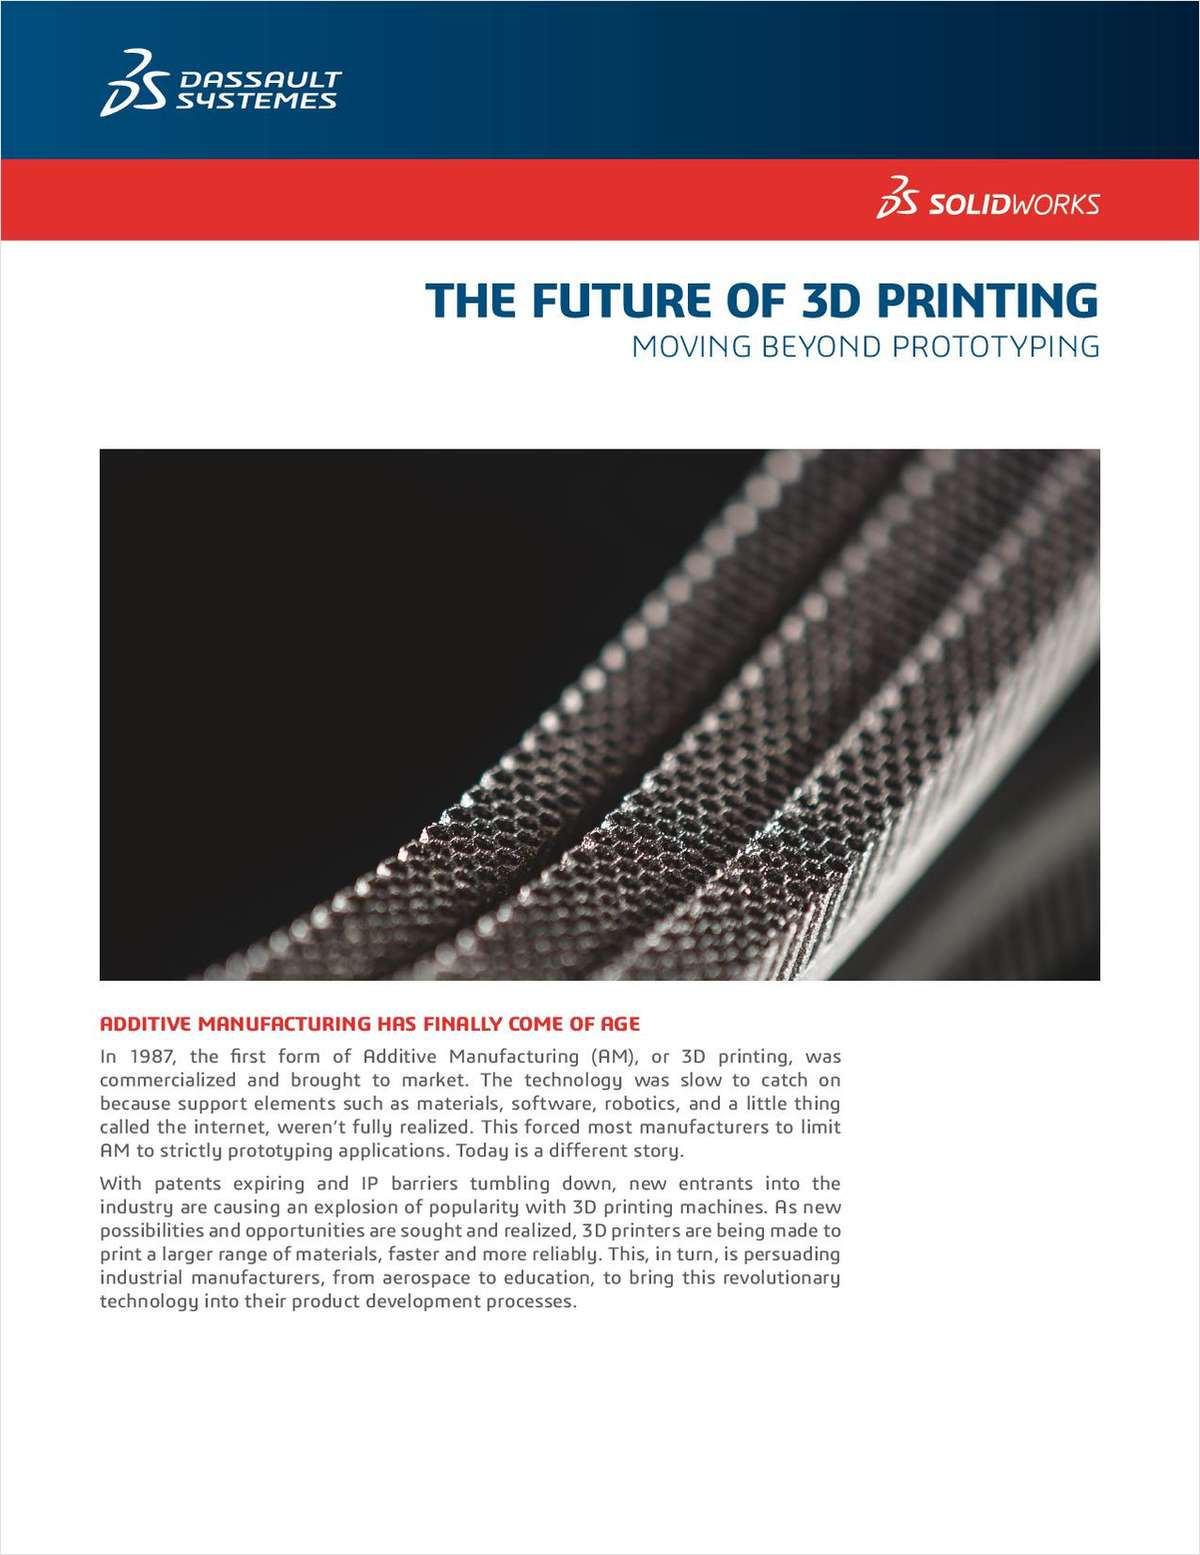 Rethink Traditional Manufacturing with 3D Printing